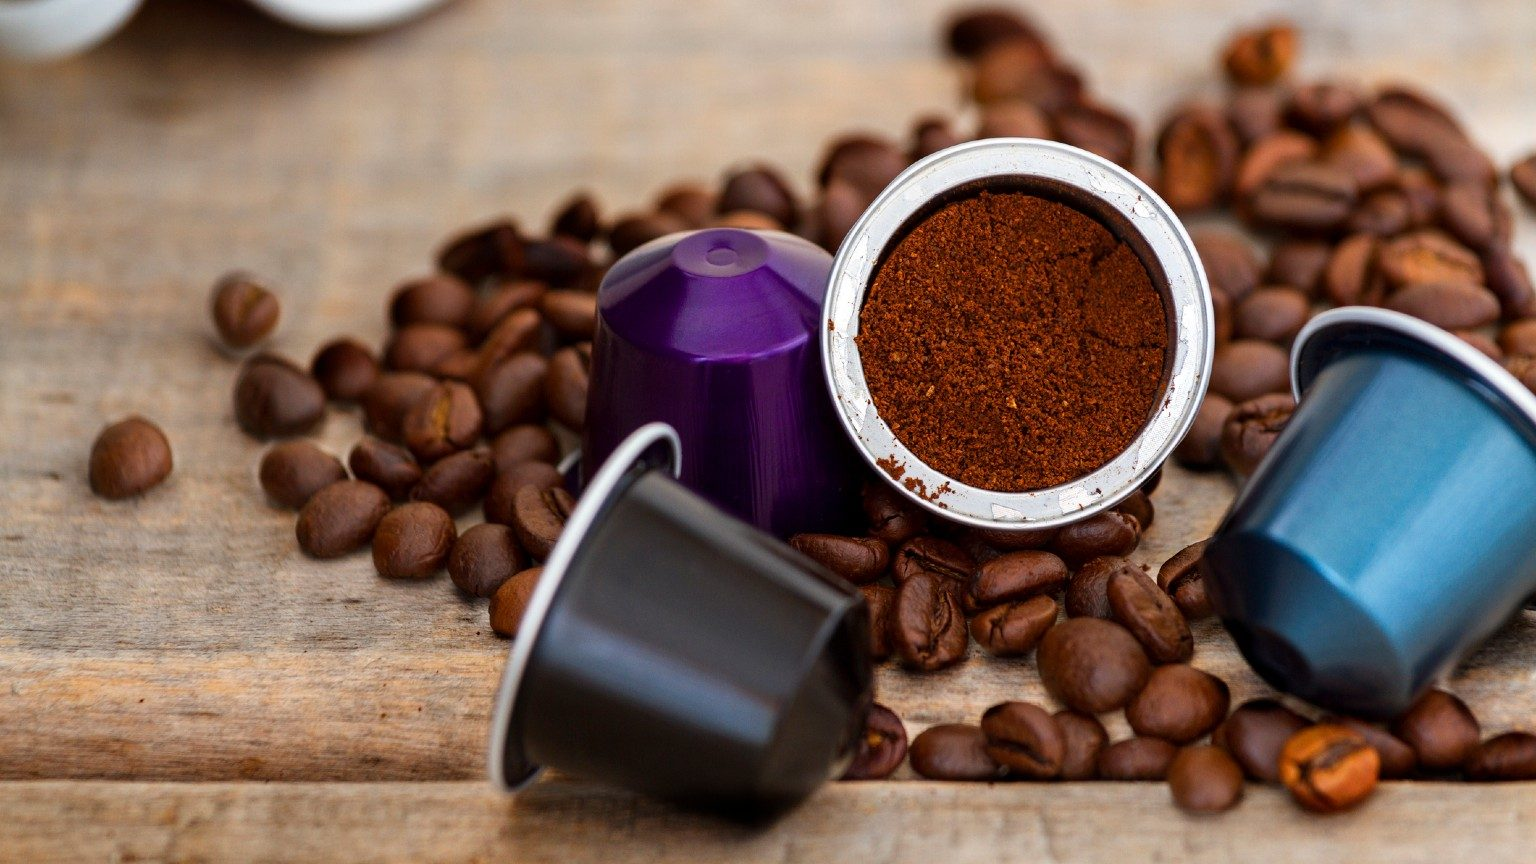 Coffee and capsules